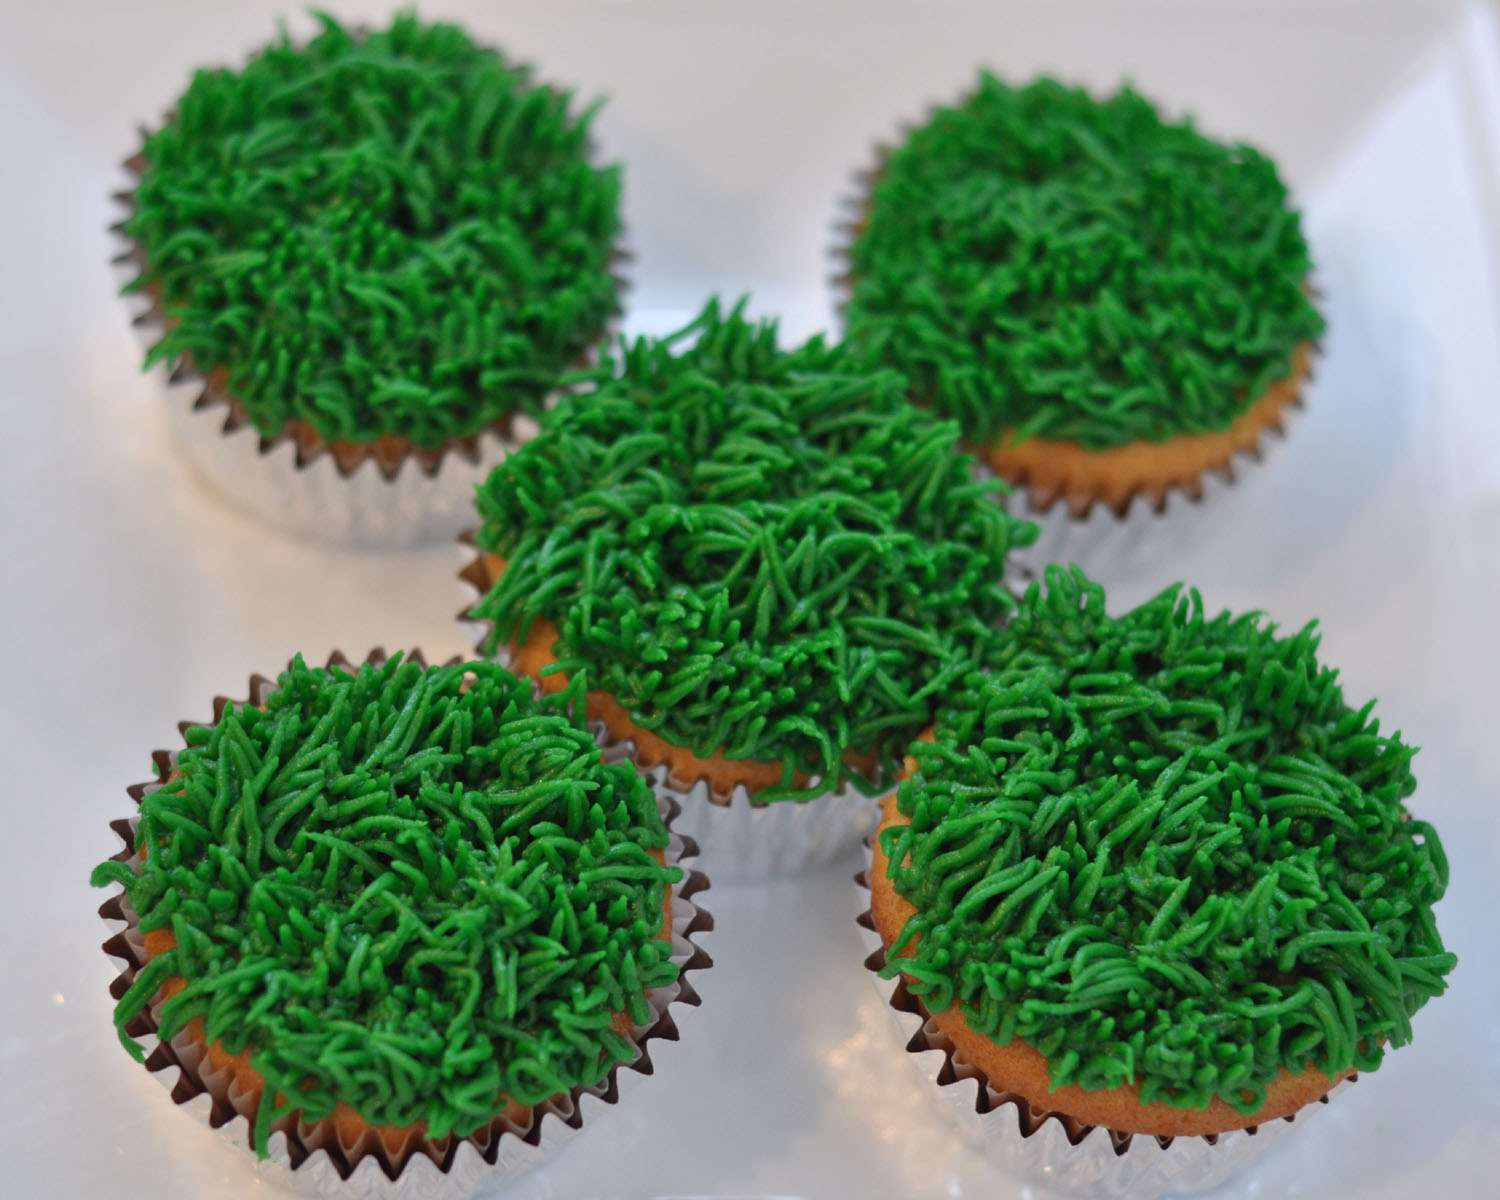 Cake Decorating Tip To Make Grass : Beki Cook s Cake Blog: Grass, Bees & Ladybugs Cupcakes